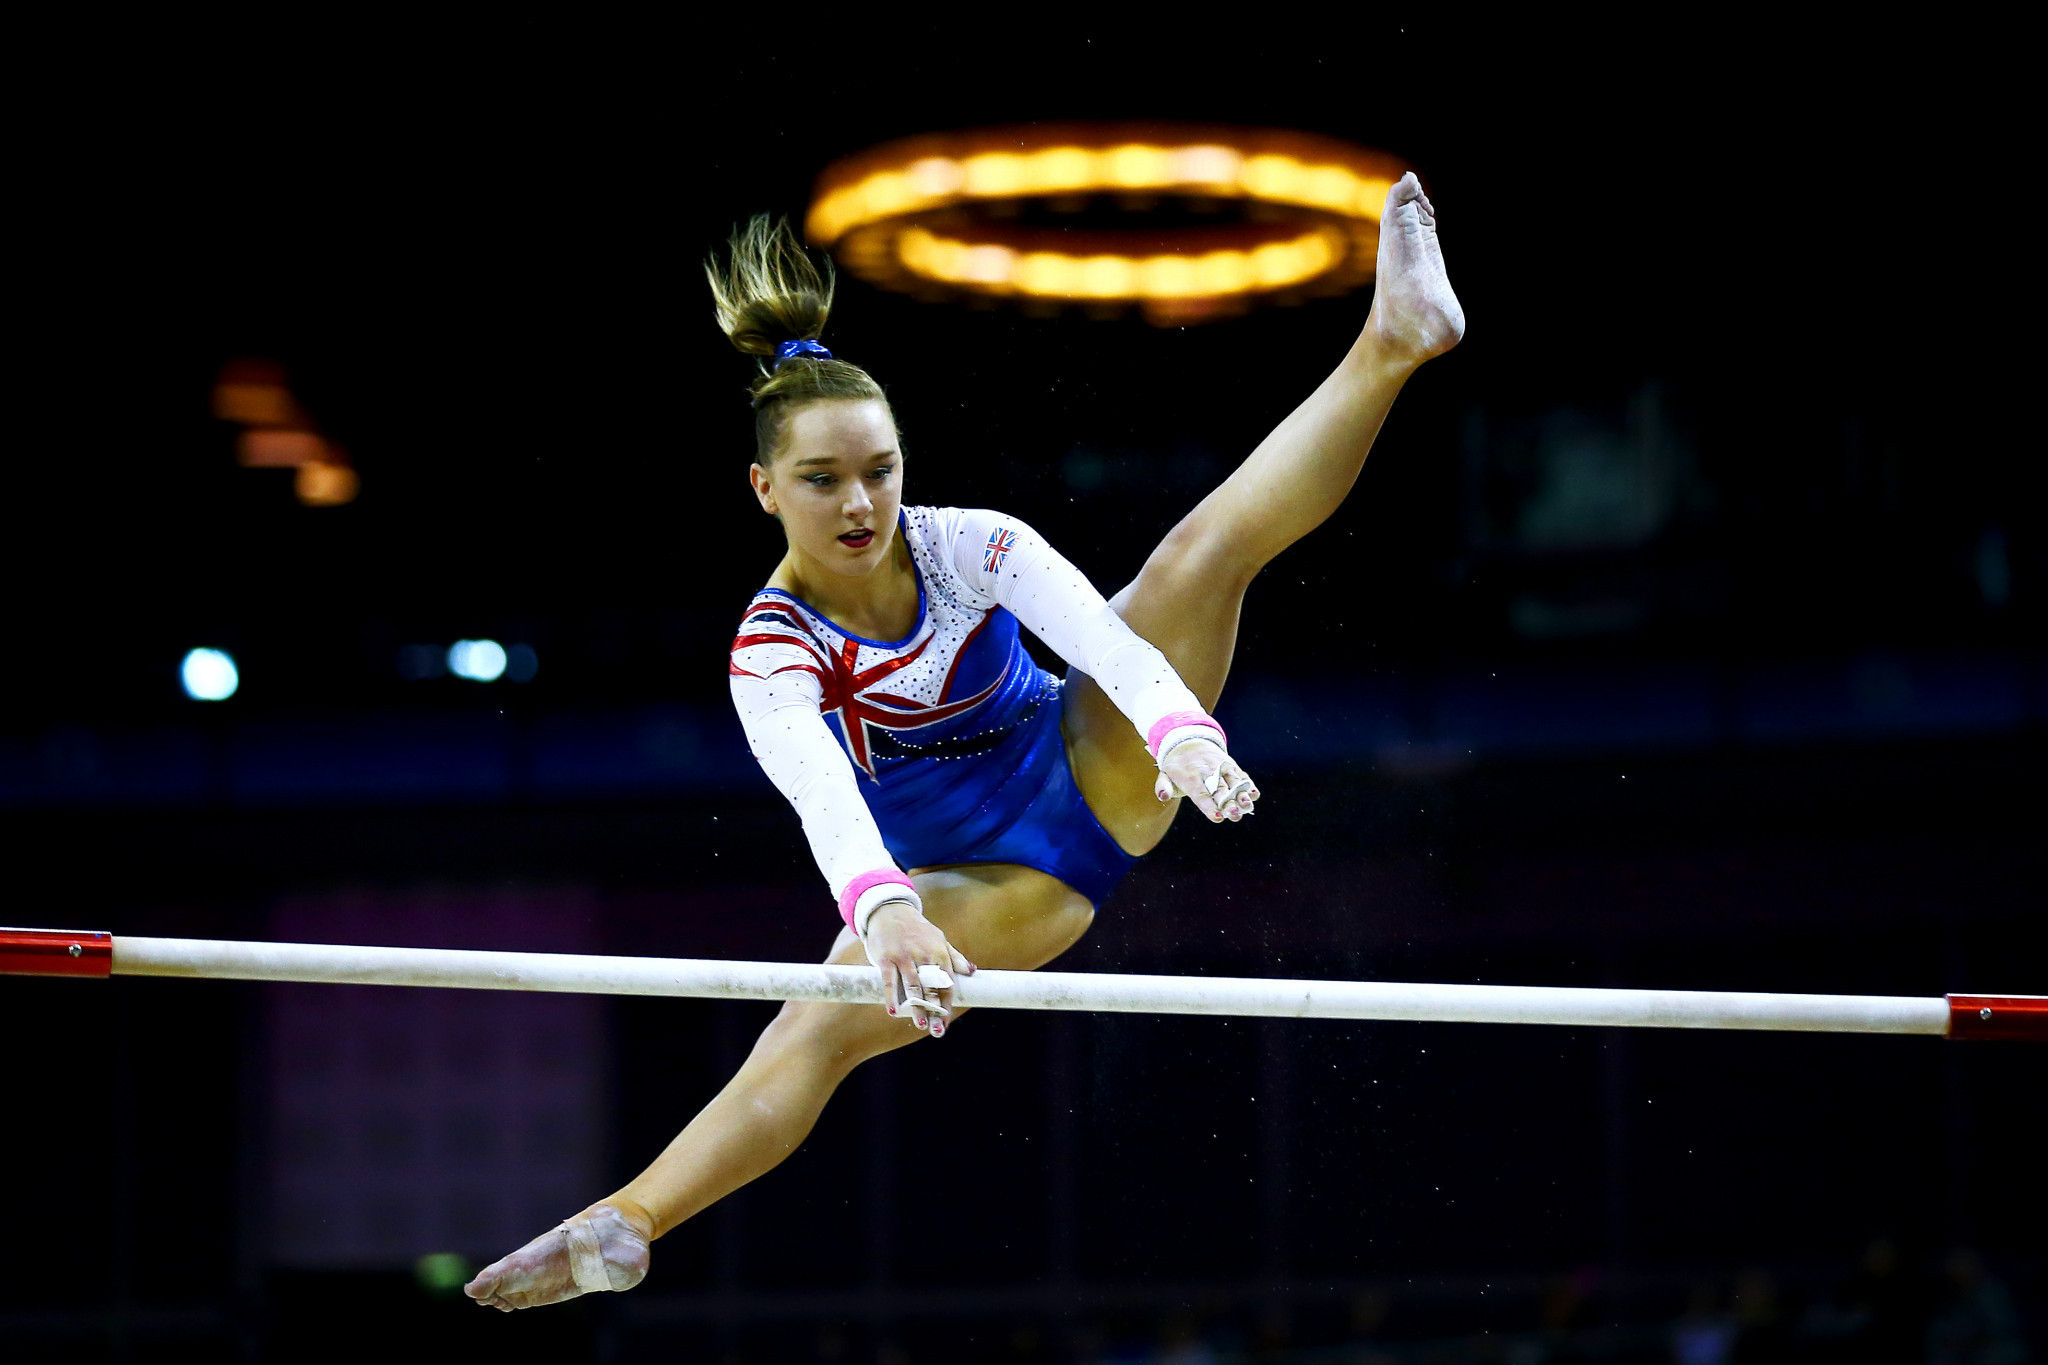 Olympic gymnastics medallist Amy Tinkler retired a month after lodging a formal complaint over allegations of abuse in December 2019 ©Getty Images